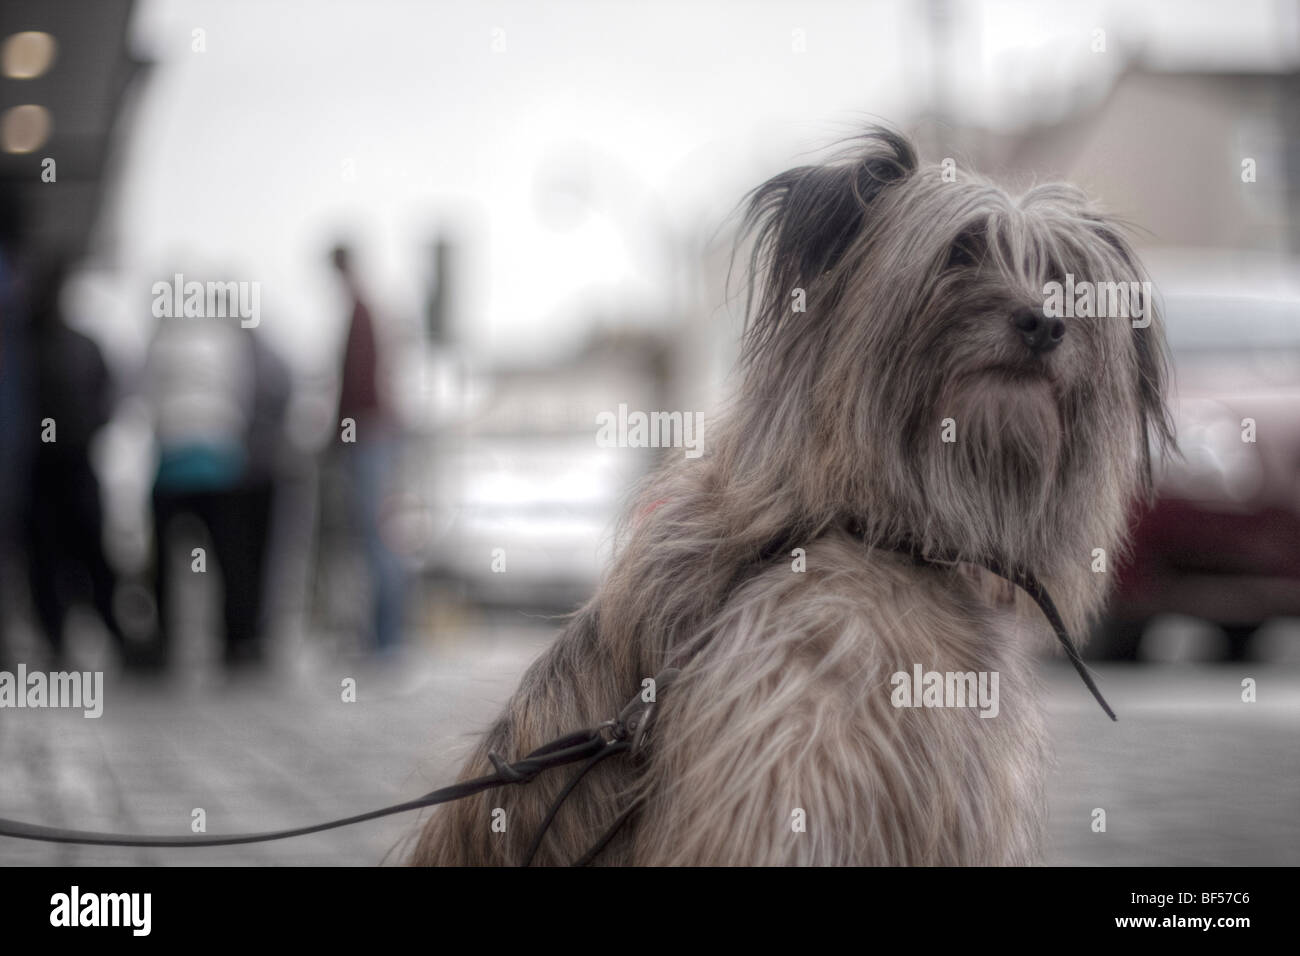 Shaggy dog - Stock Image